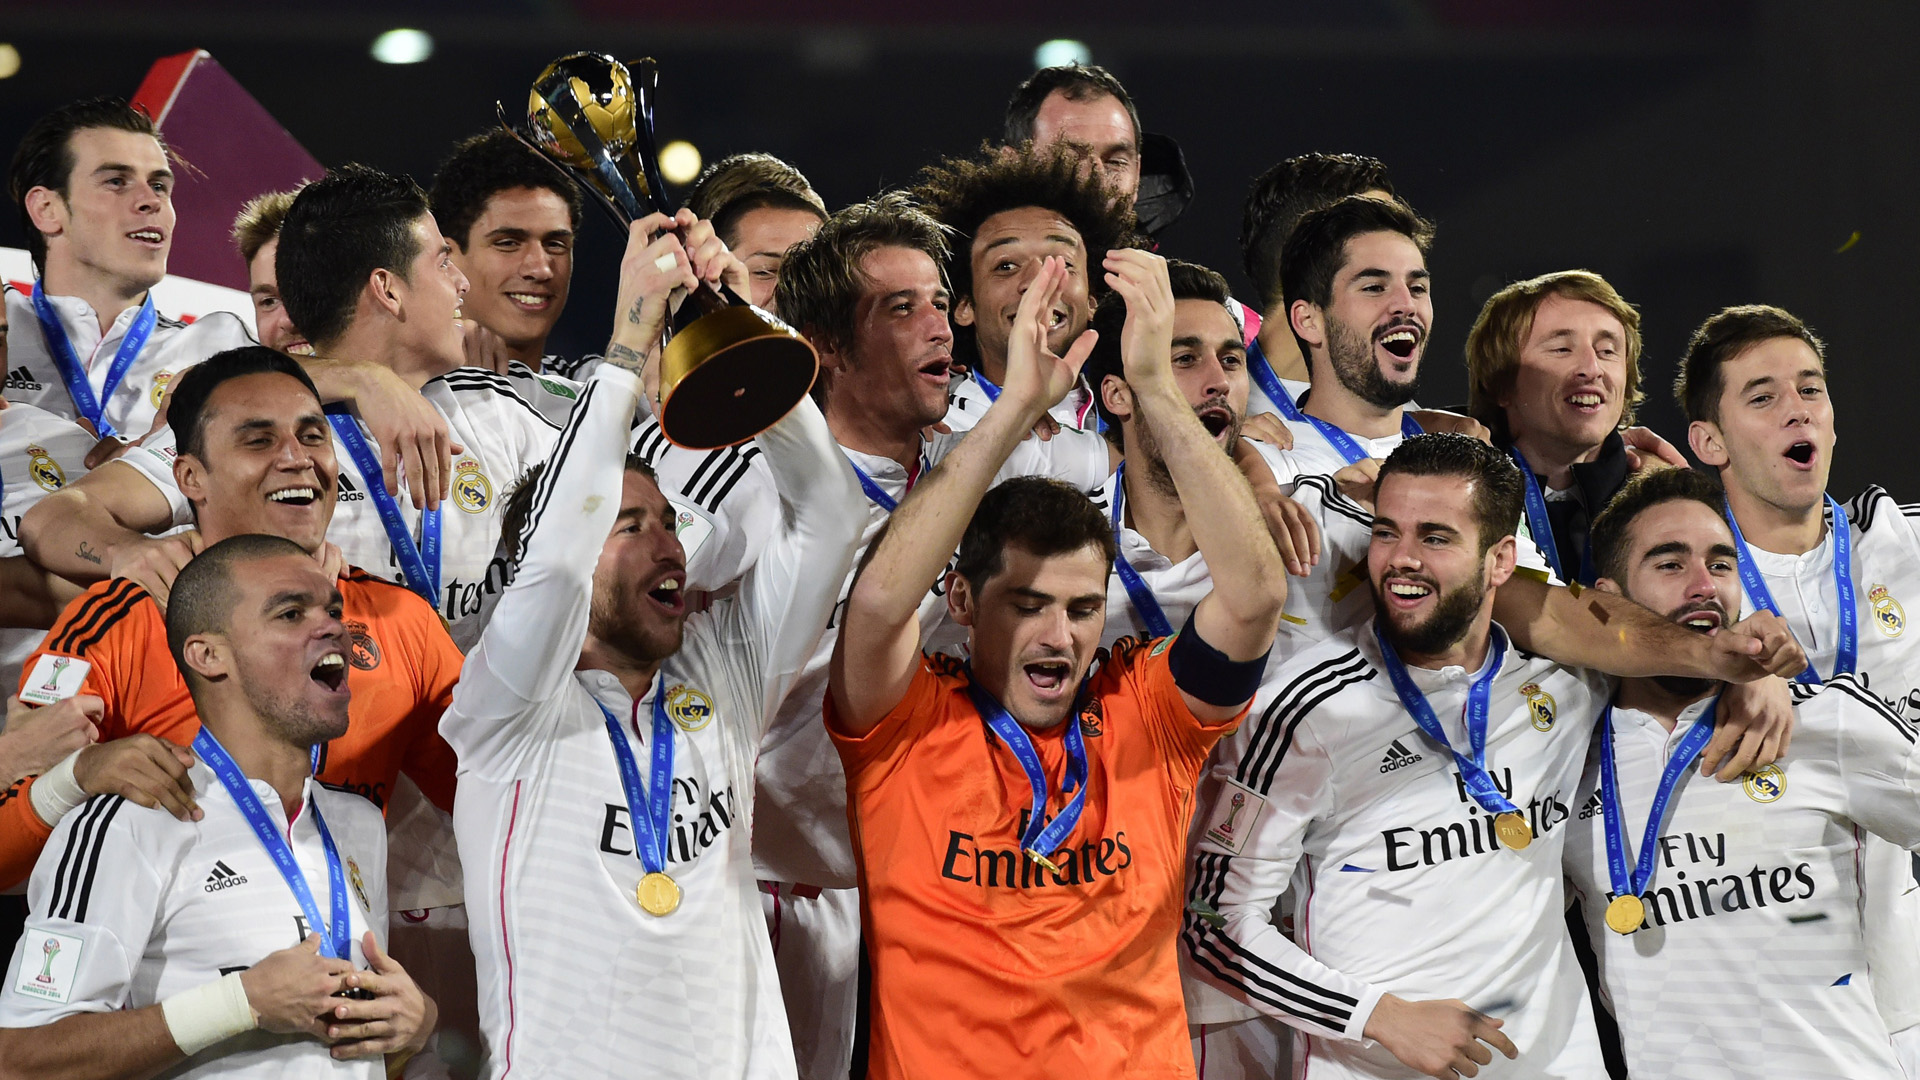 Microsoft and Real Madrid partner to increase fan experience